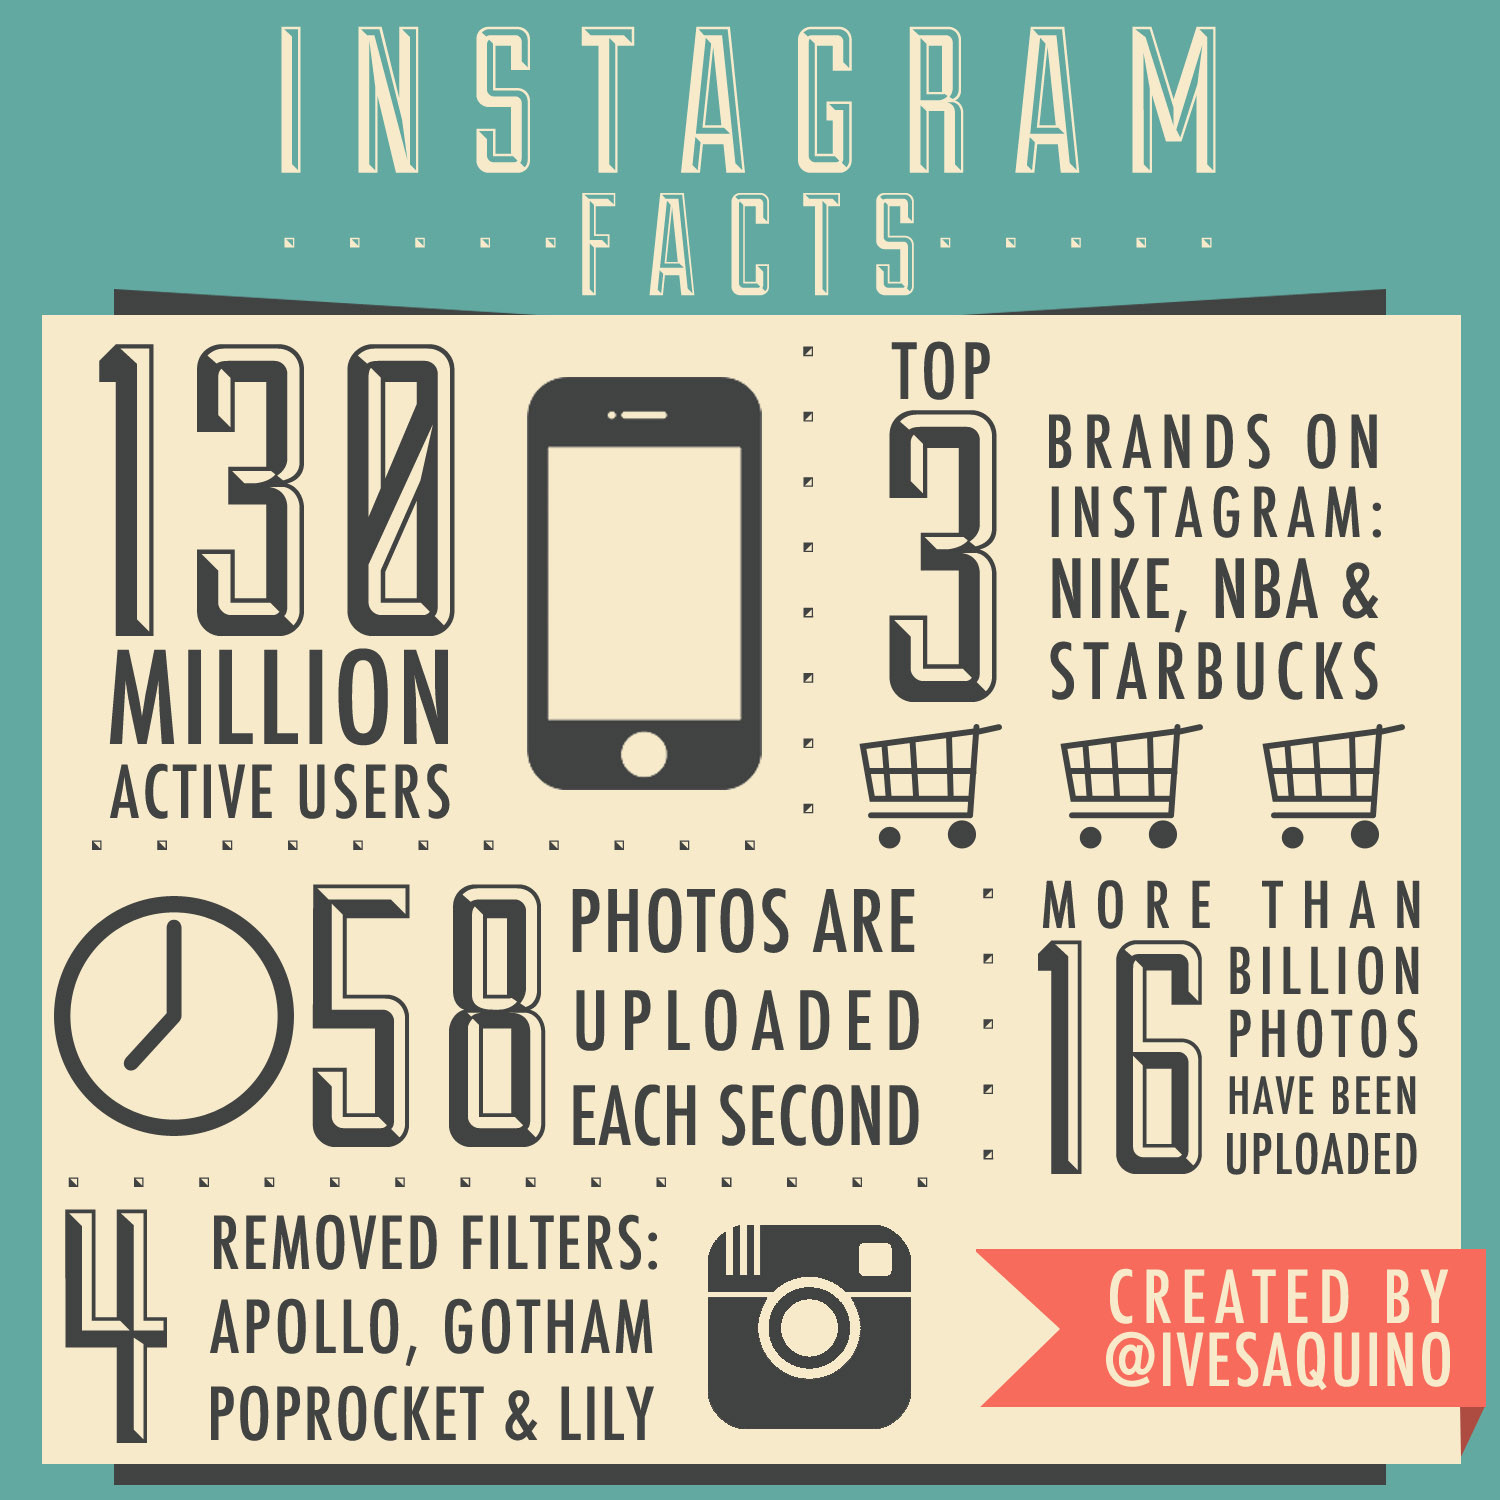 Instagram Facts Infographic